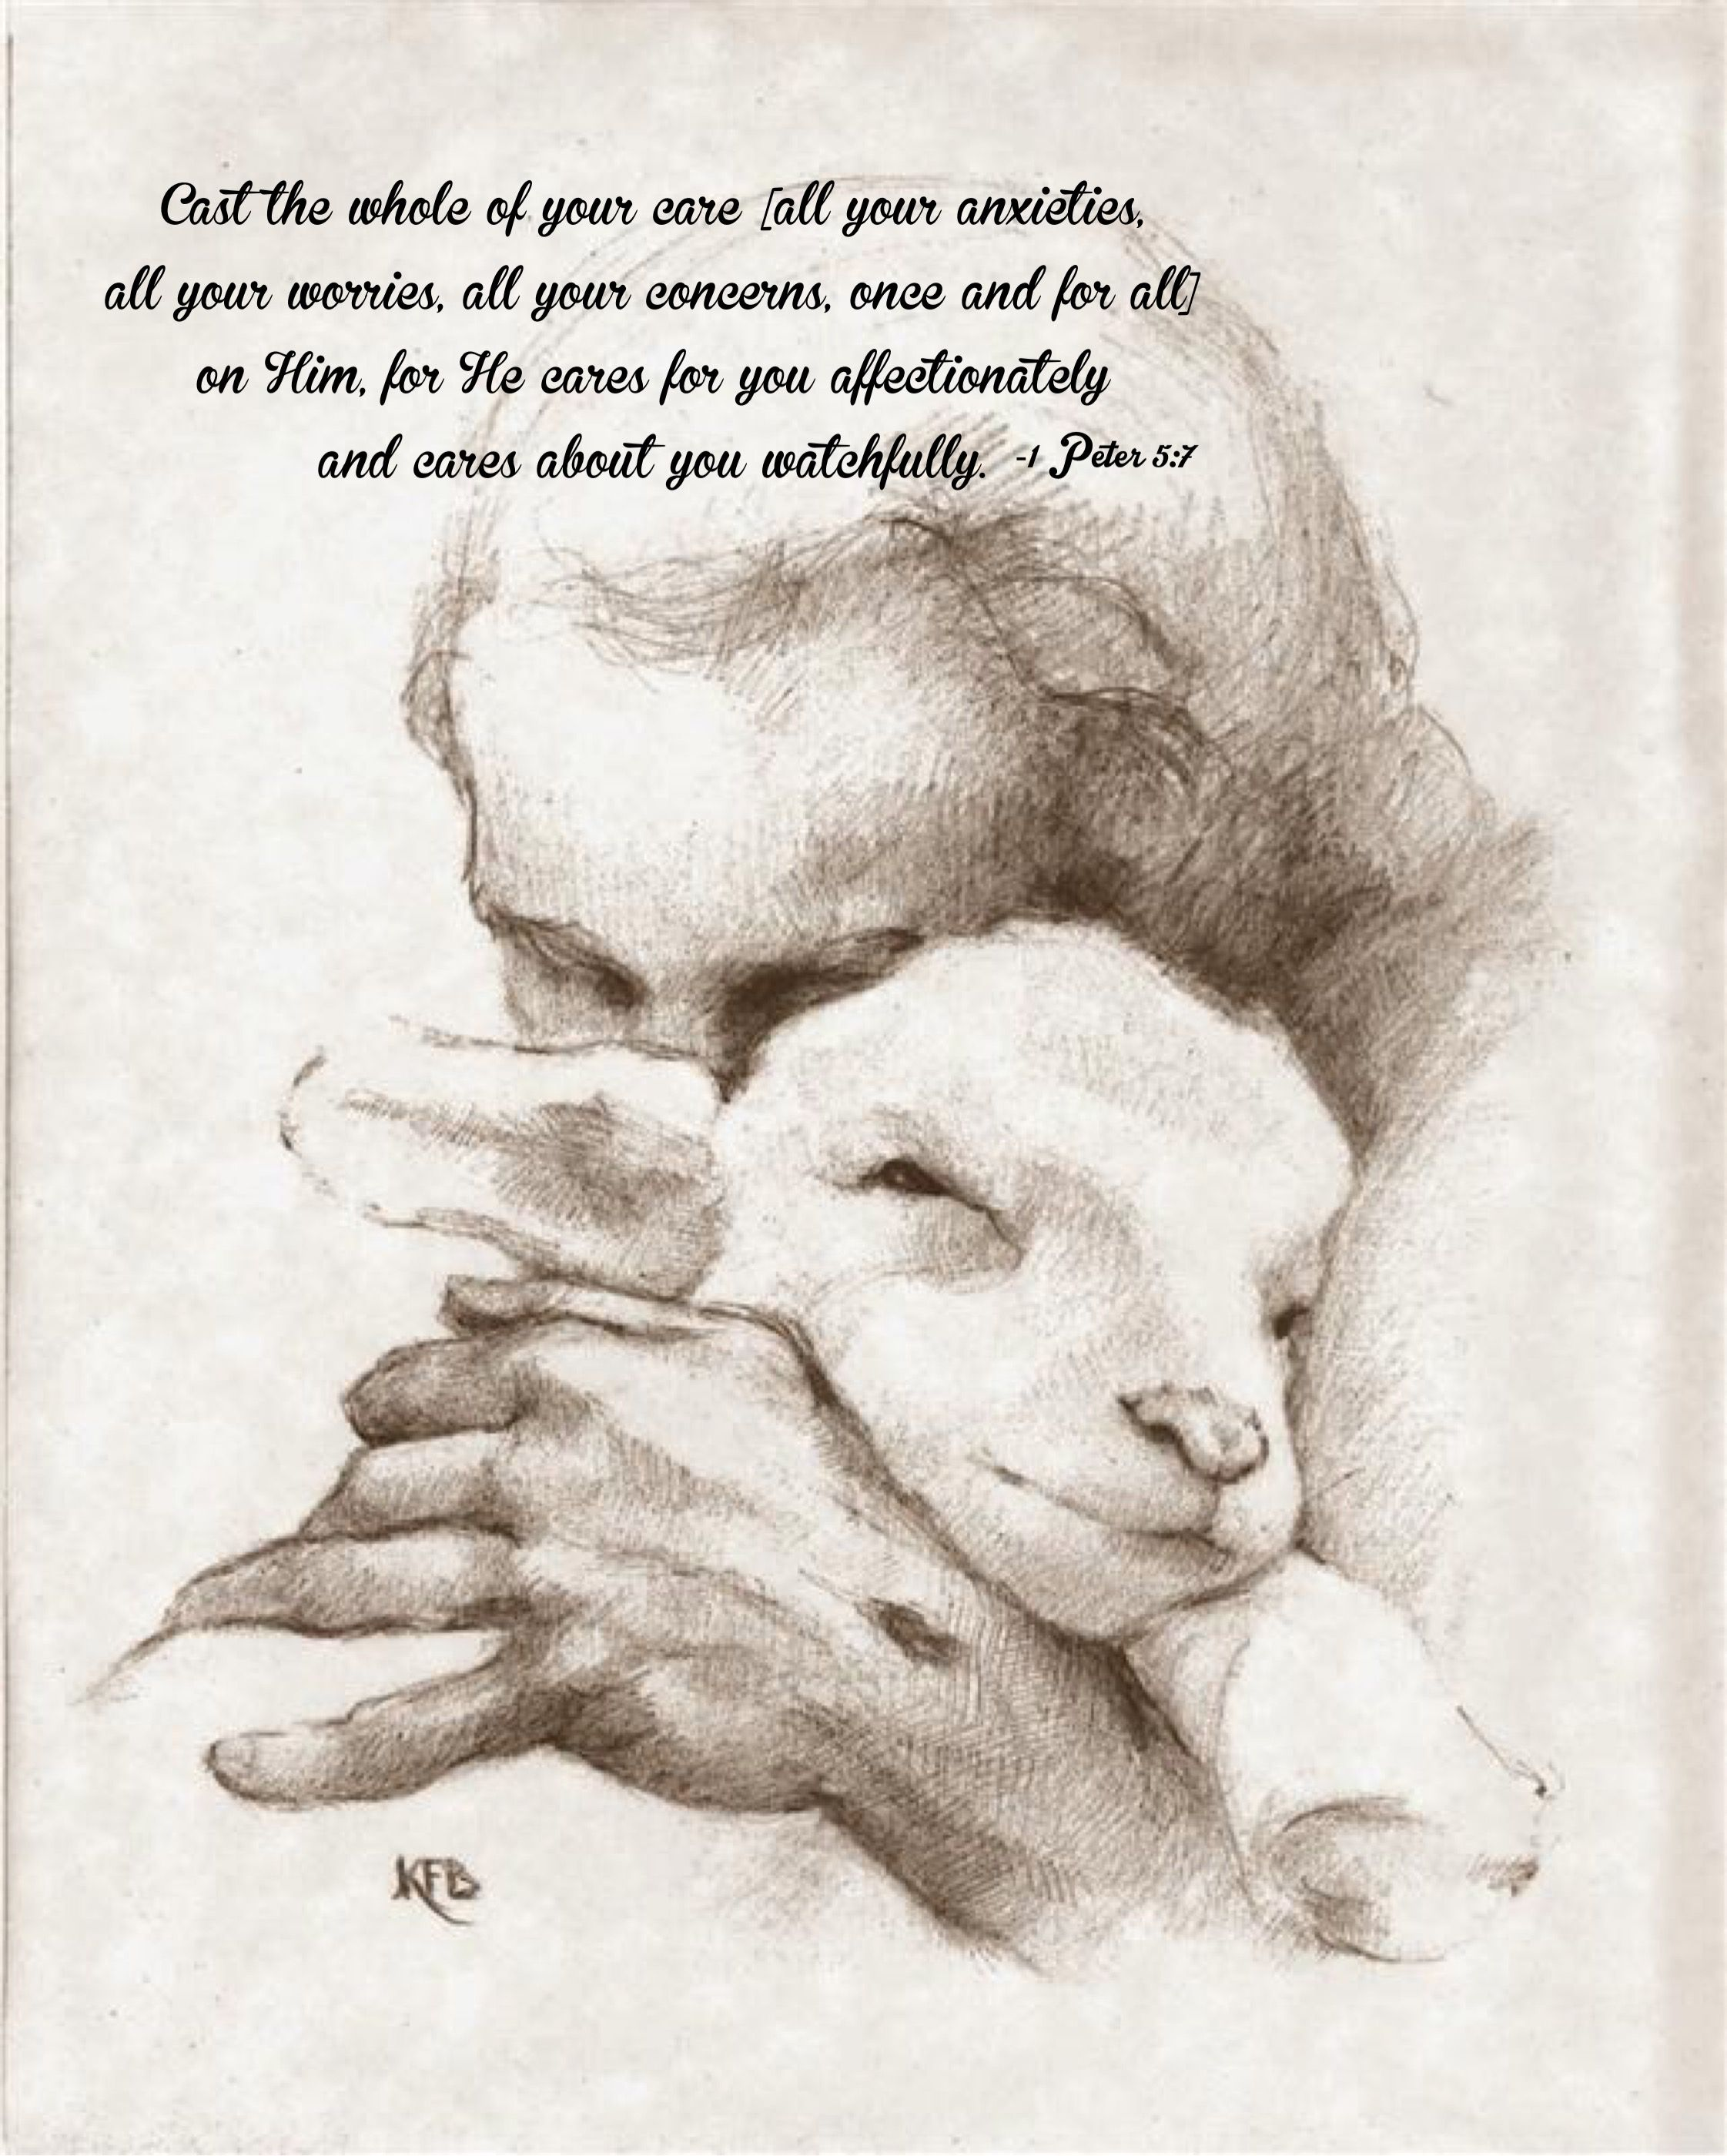 Cast your cares on Him for He cares for you. | Jesus, Christian paintings, Pictures of christ